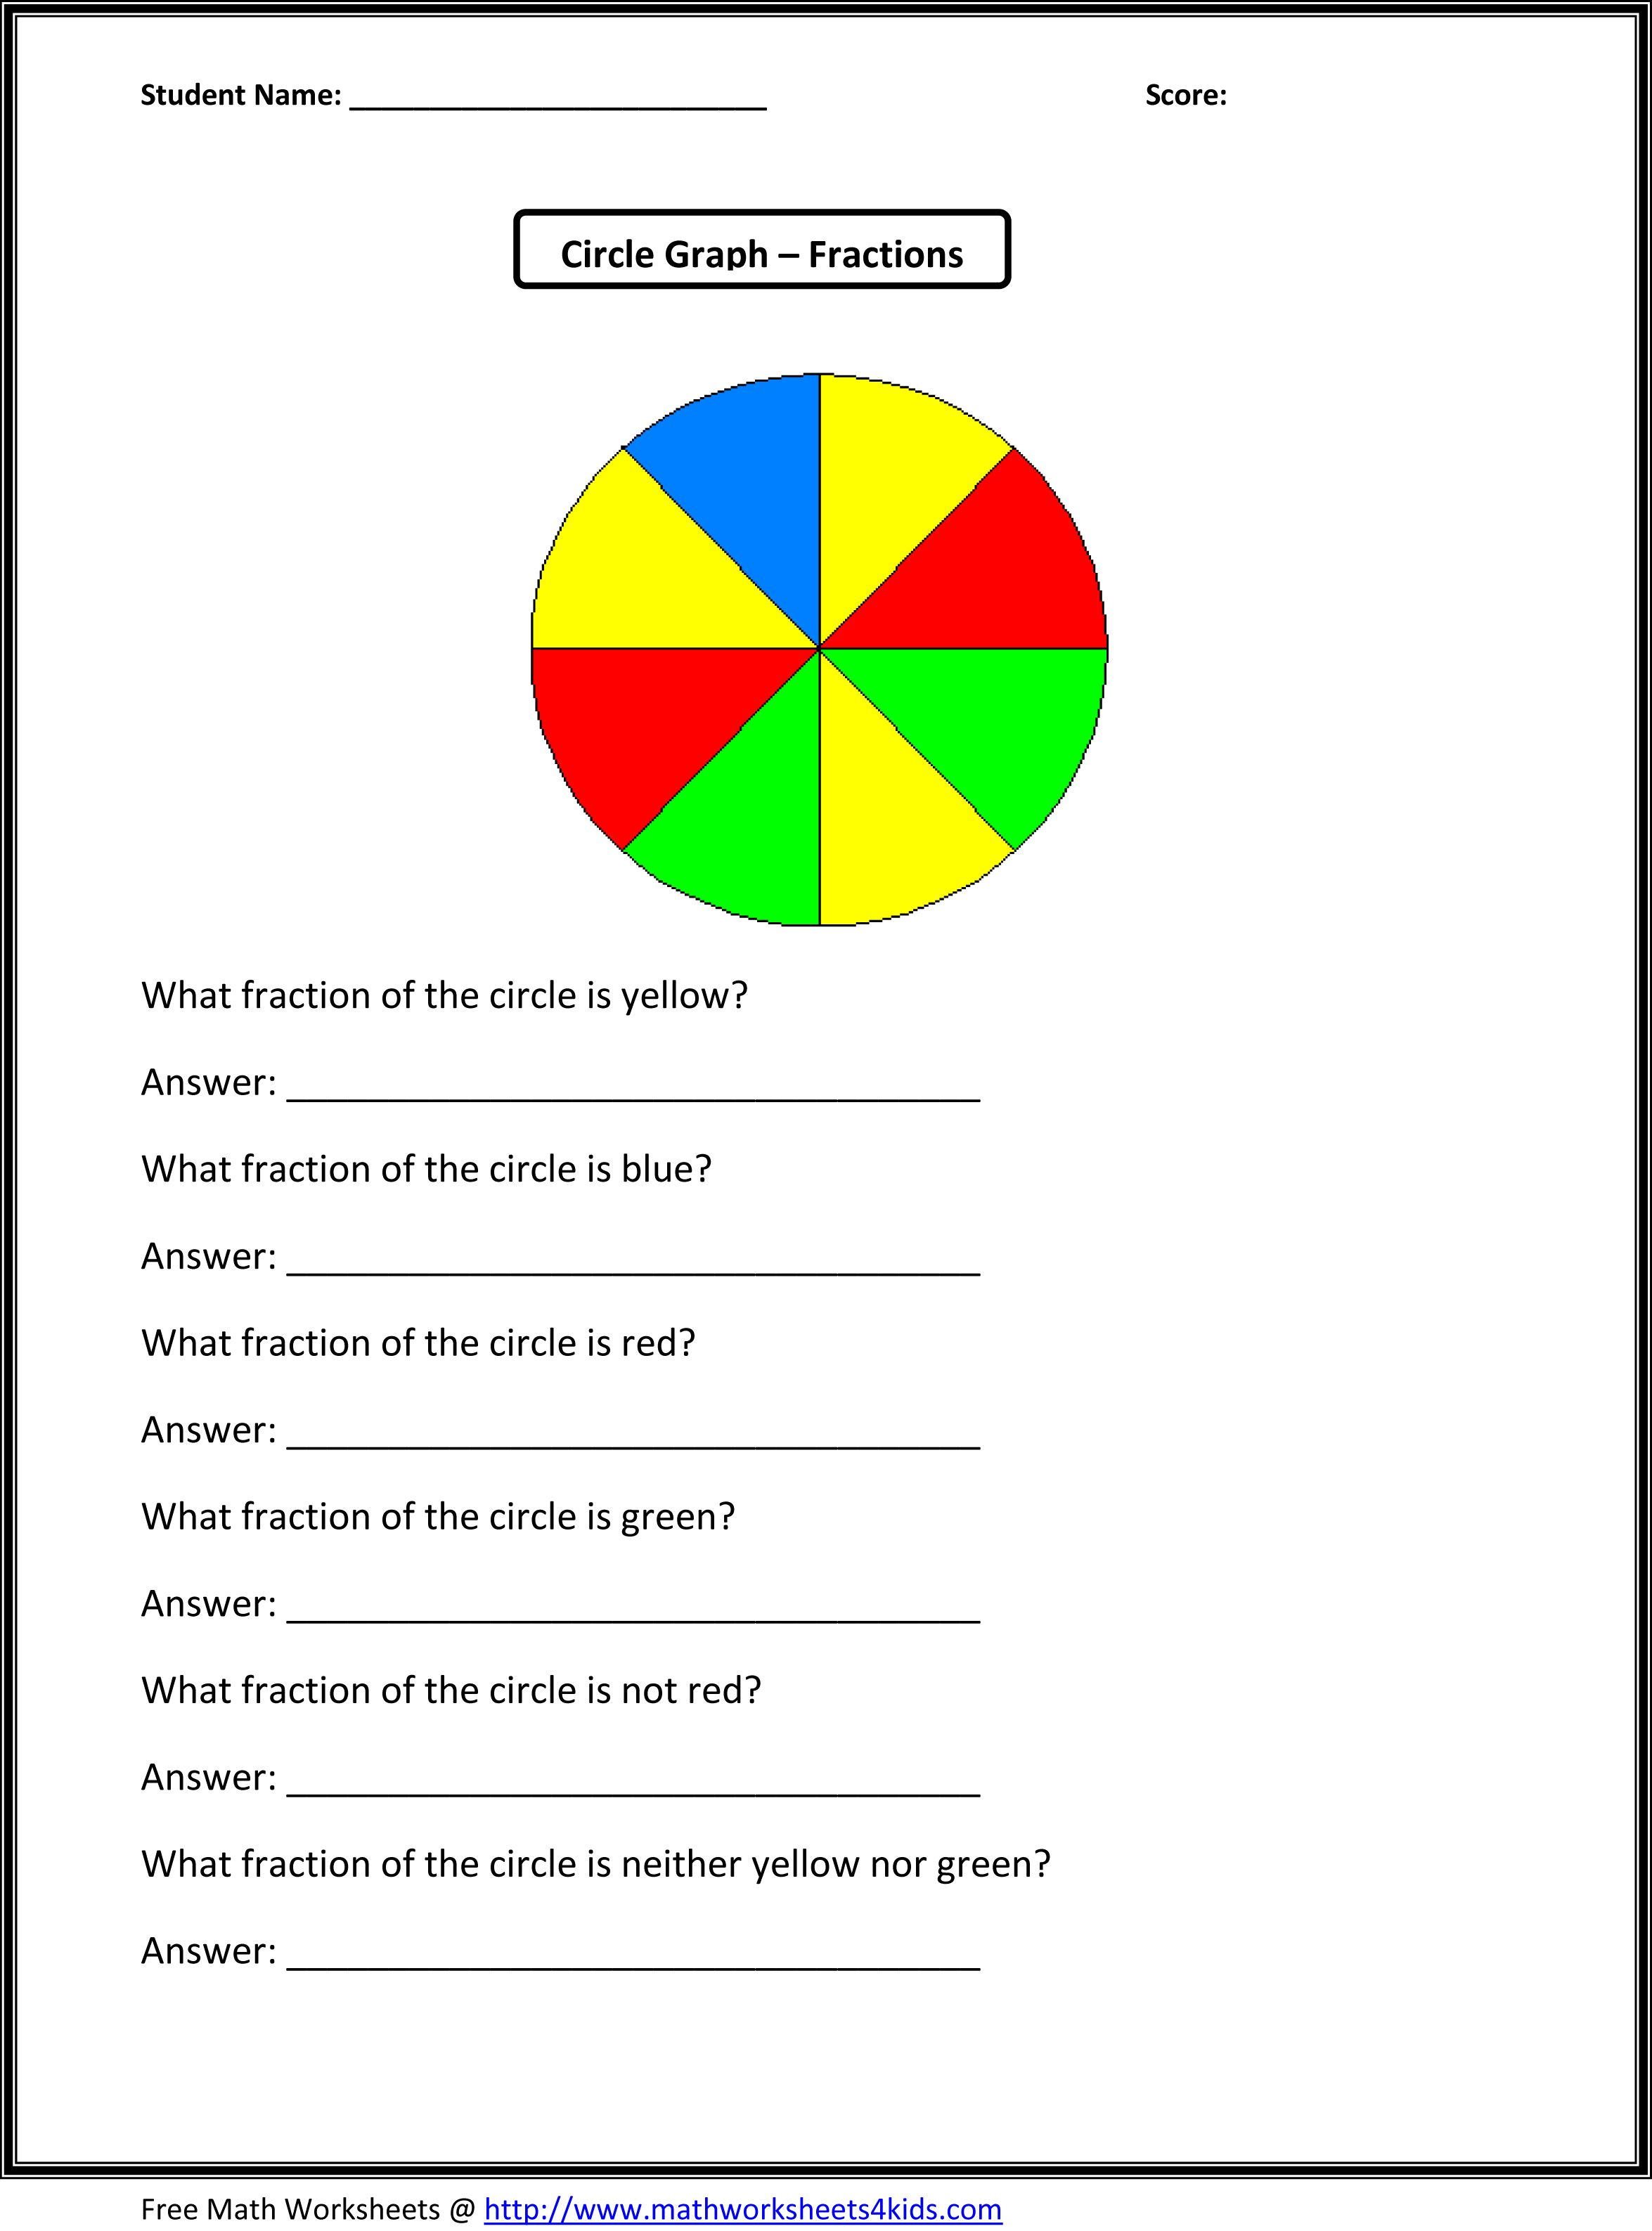 7th Grade Worksheet Algebraic Reasoning